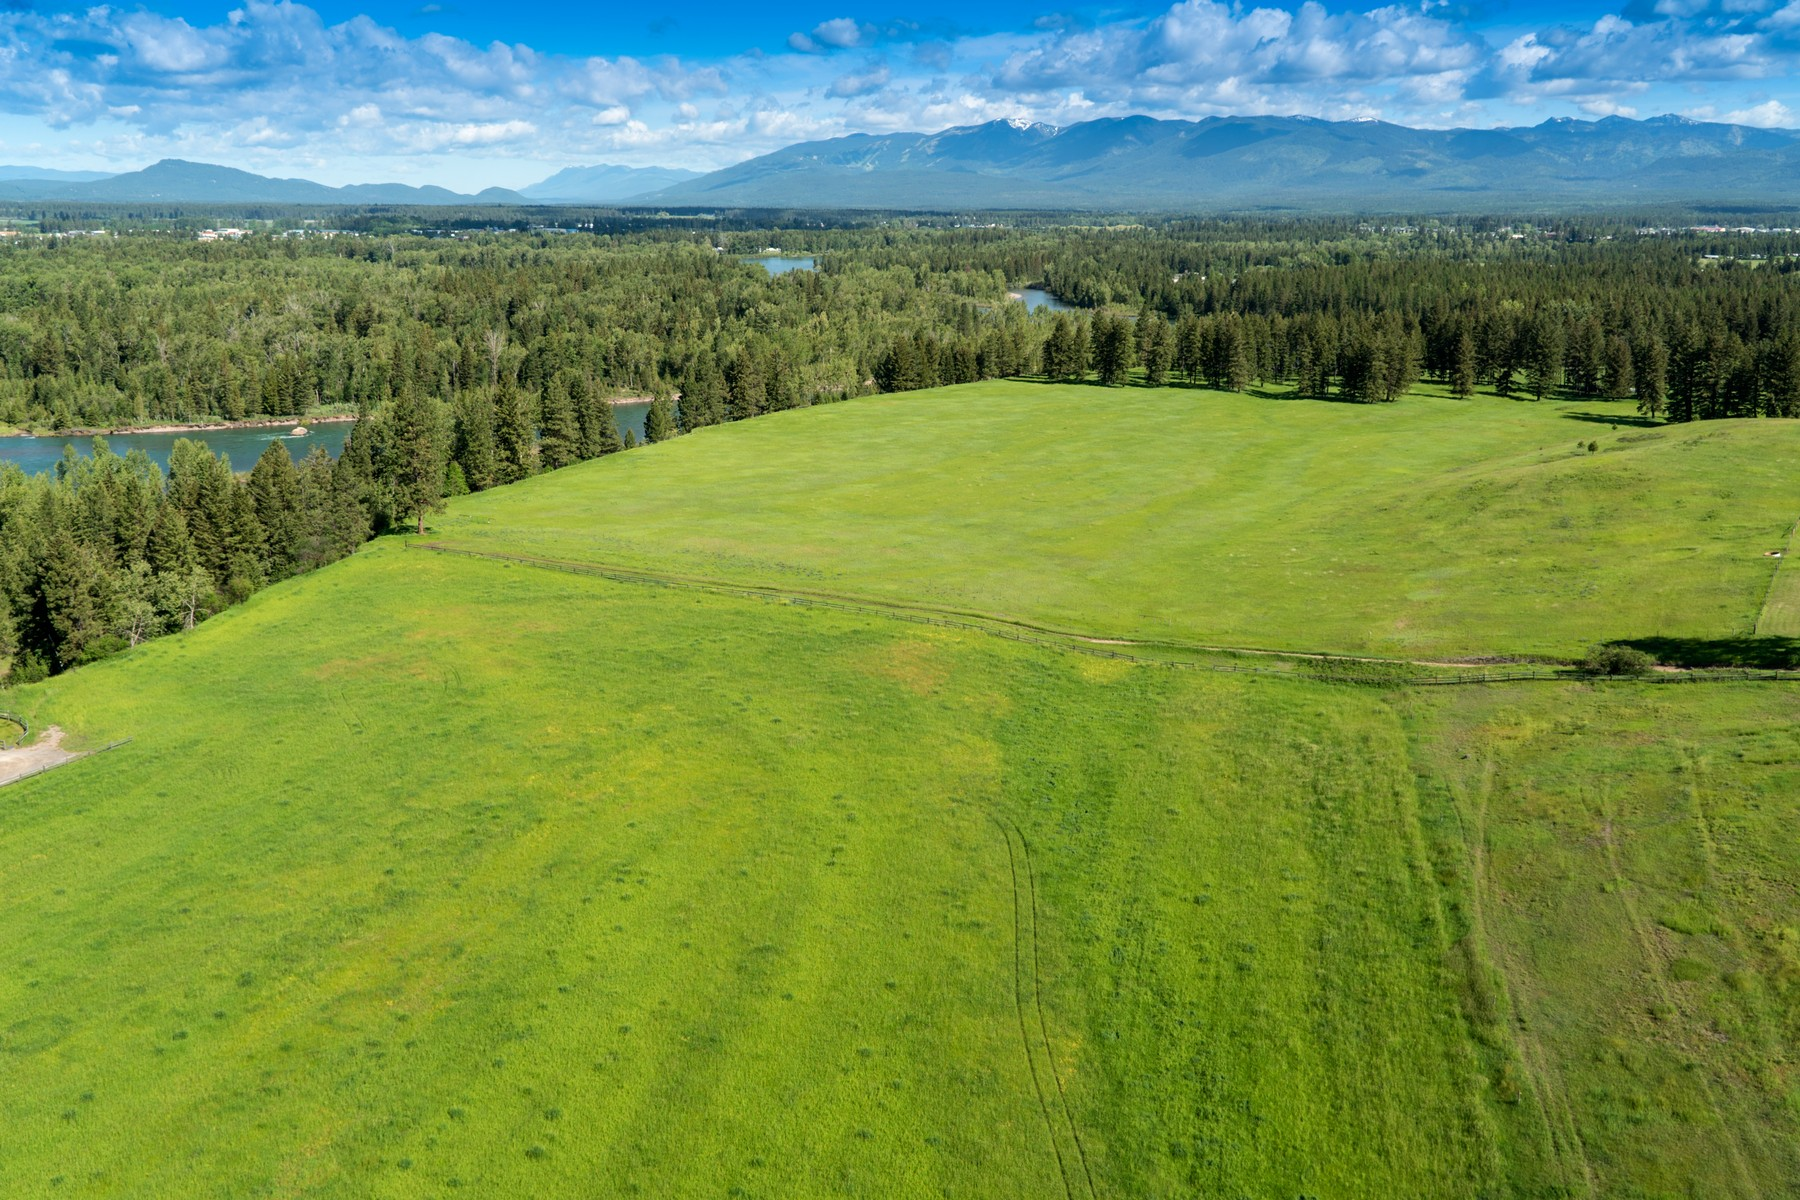 Additional photo for property listing at 18 Gentry Way , Columbia Falls, MT 59912 18  Gentry Way Columbia Falls, Montana 59912 United States